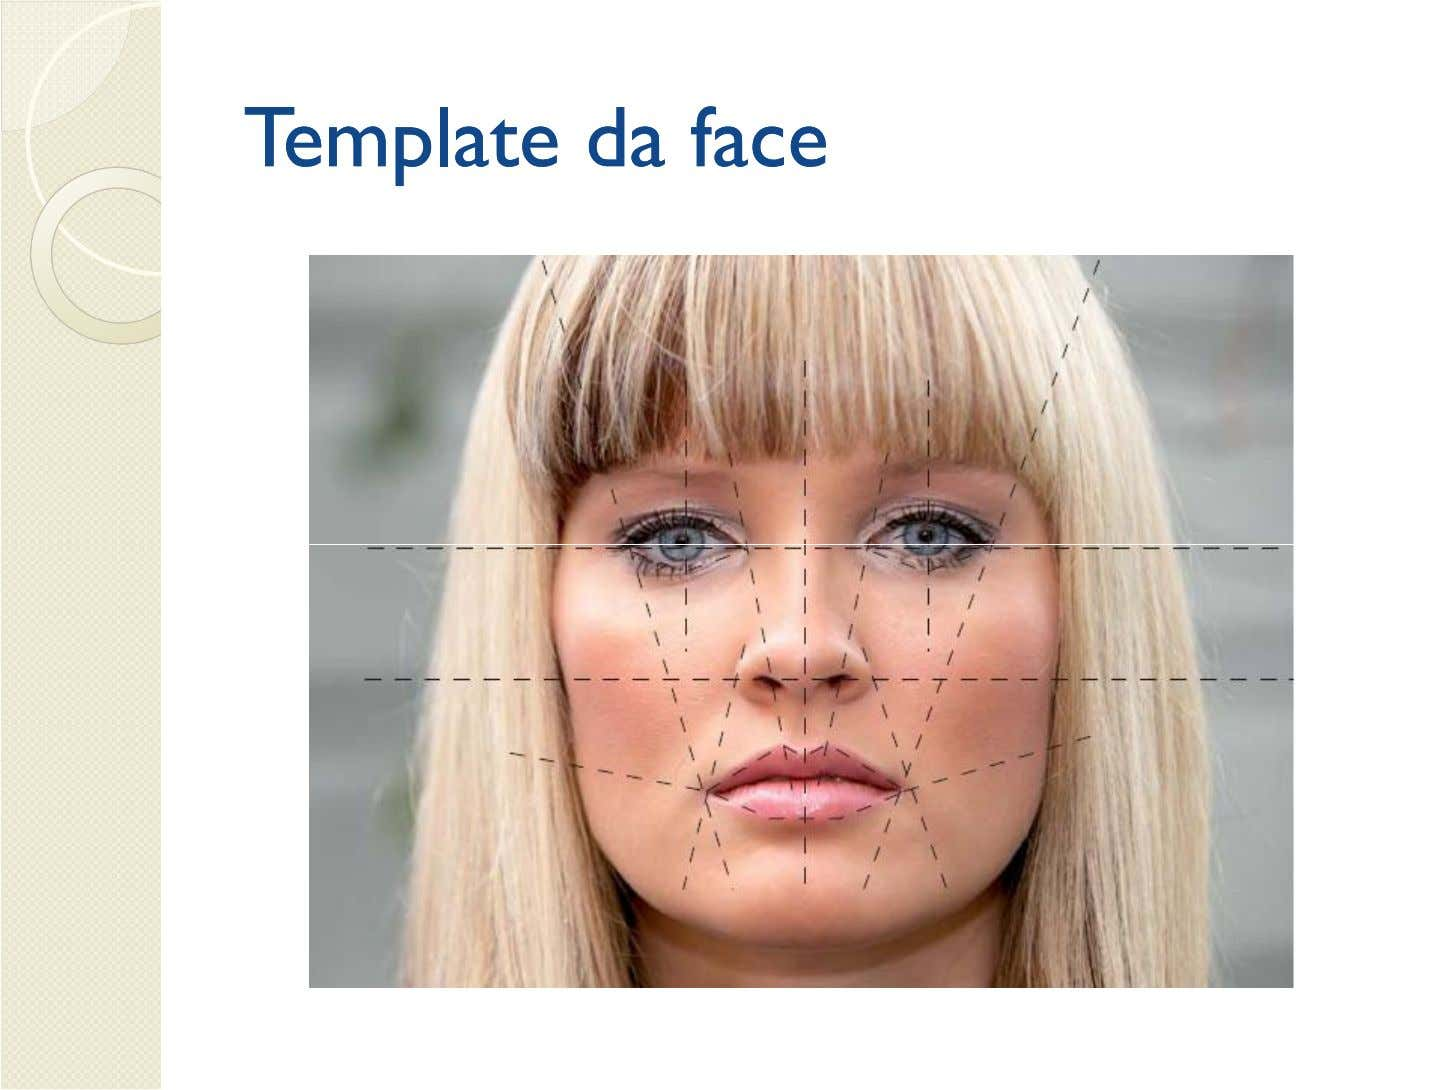 TTemplateemplate dada faceface